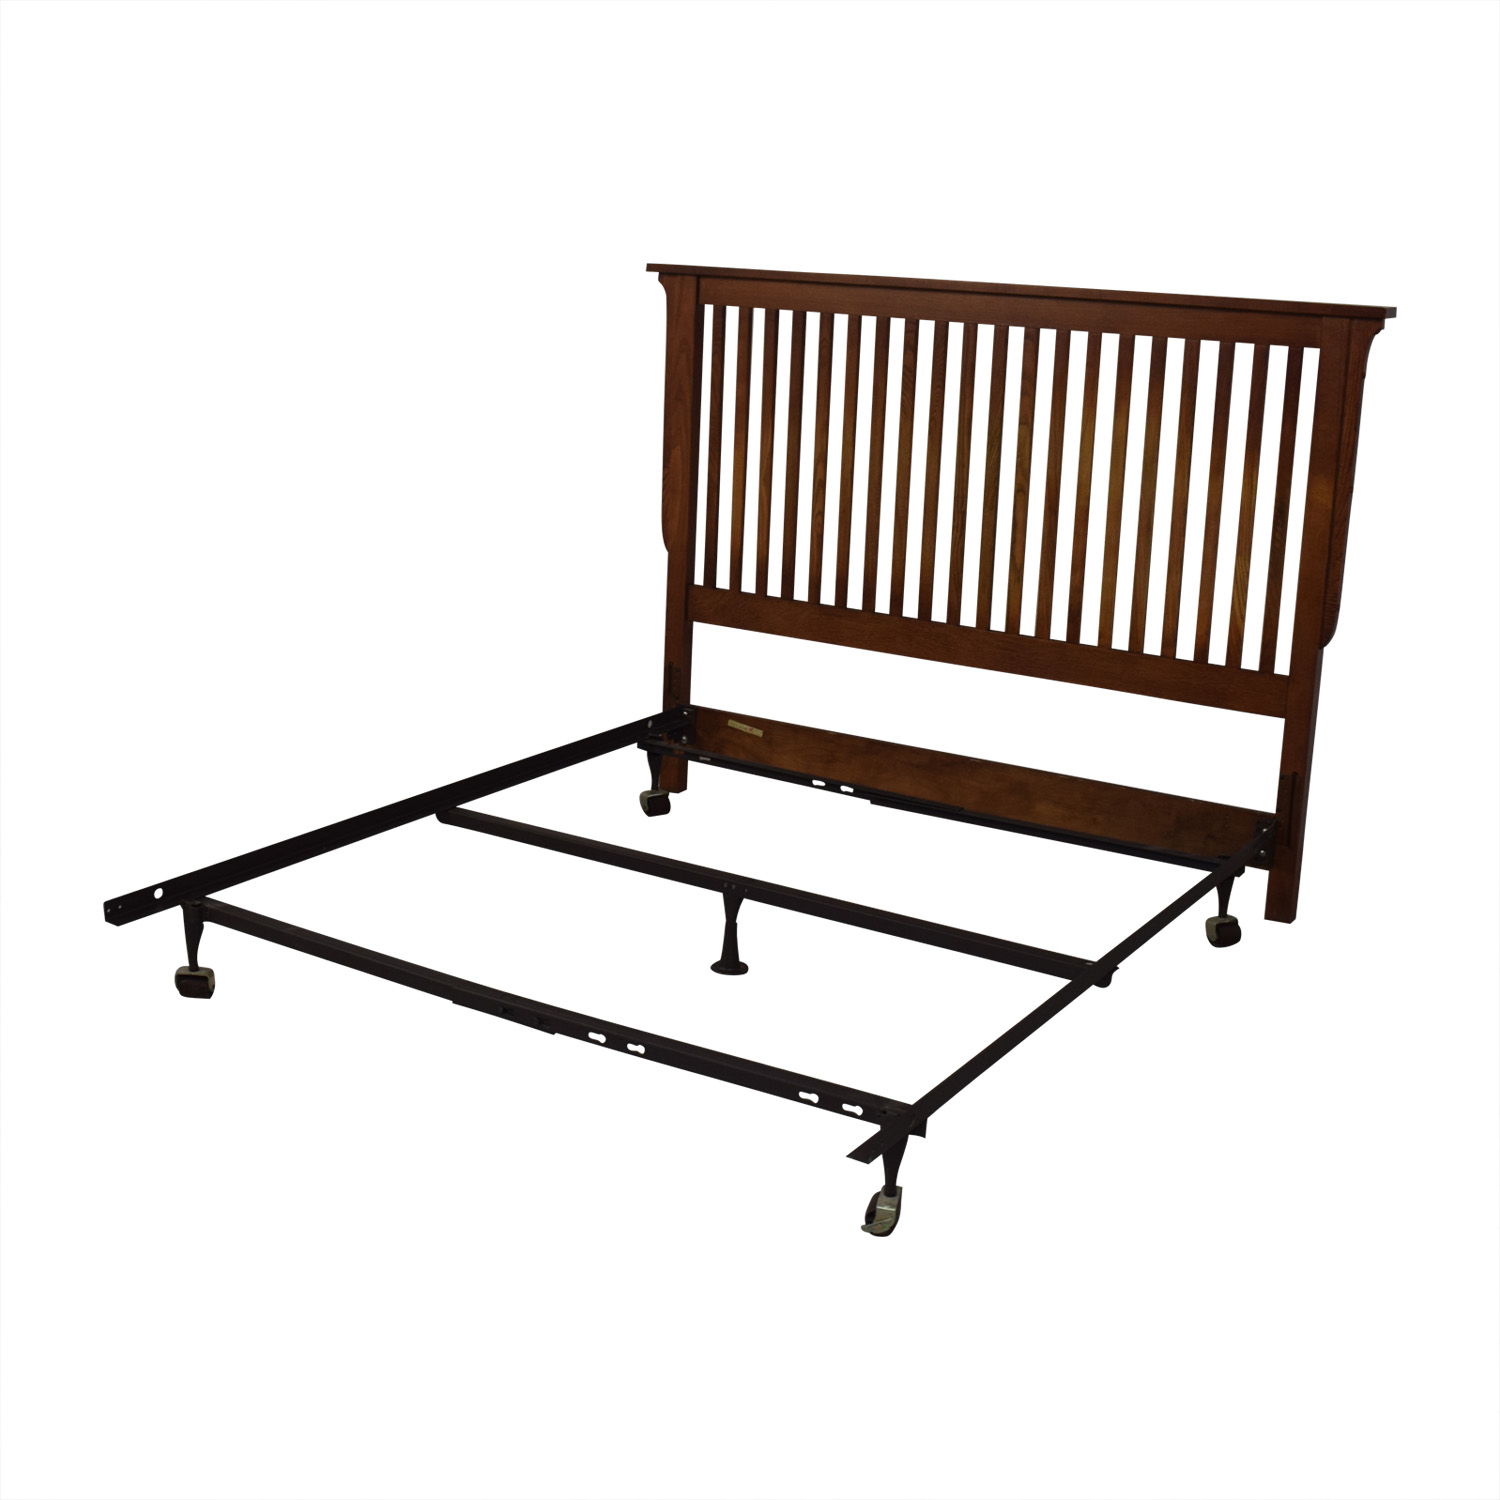 shop Bassett Furniture Mission Wood Headboard and Metal Base Full Bed Frame Bassett Furniture Beds